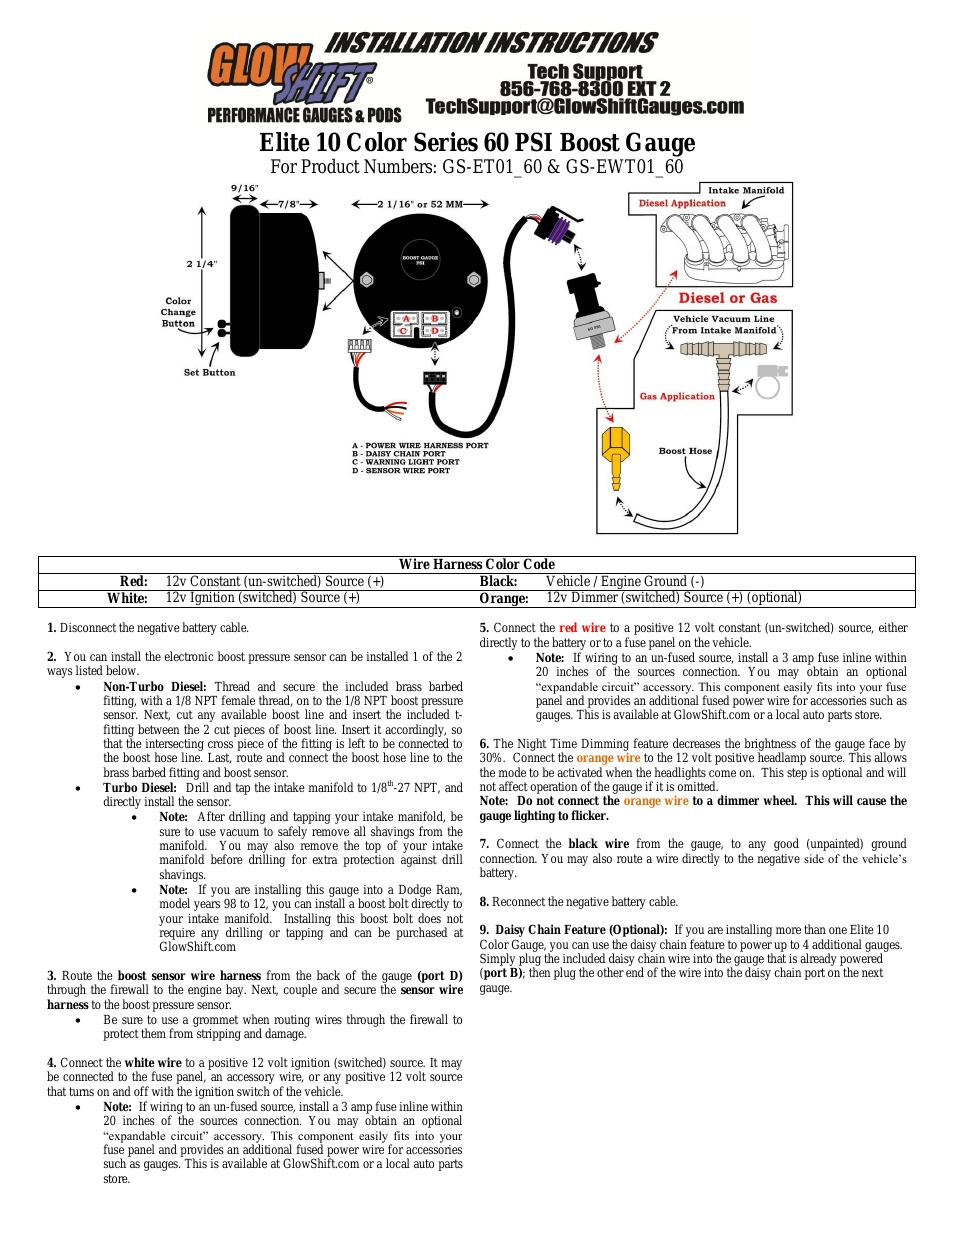 wiring diagram for glowshift boost gauge